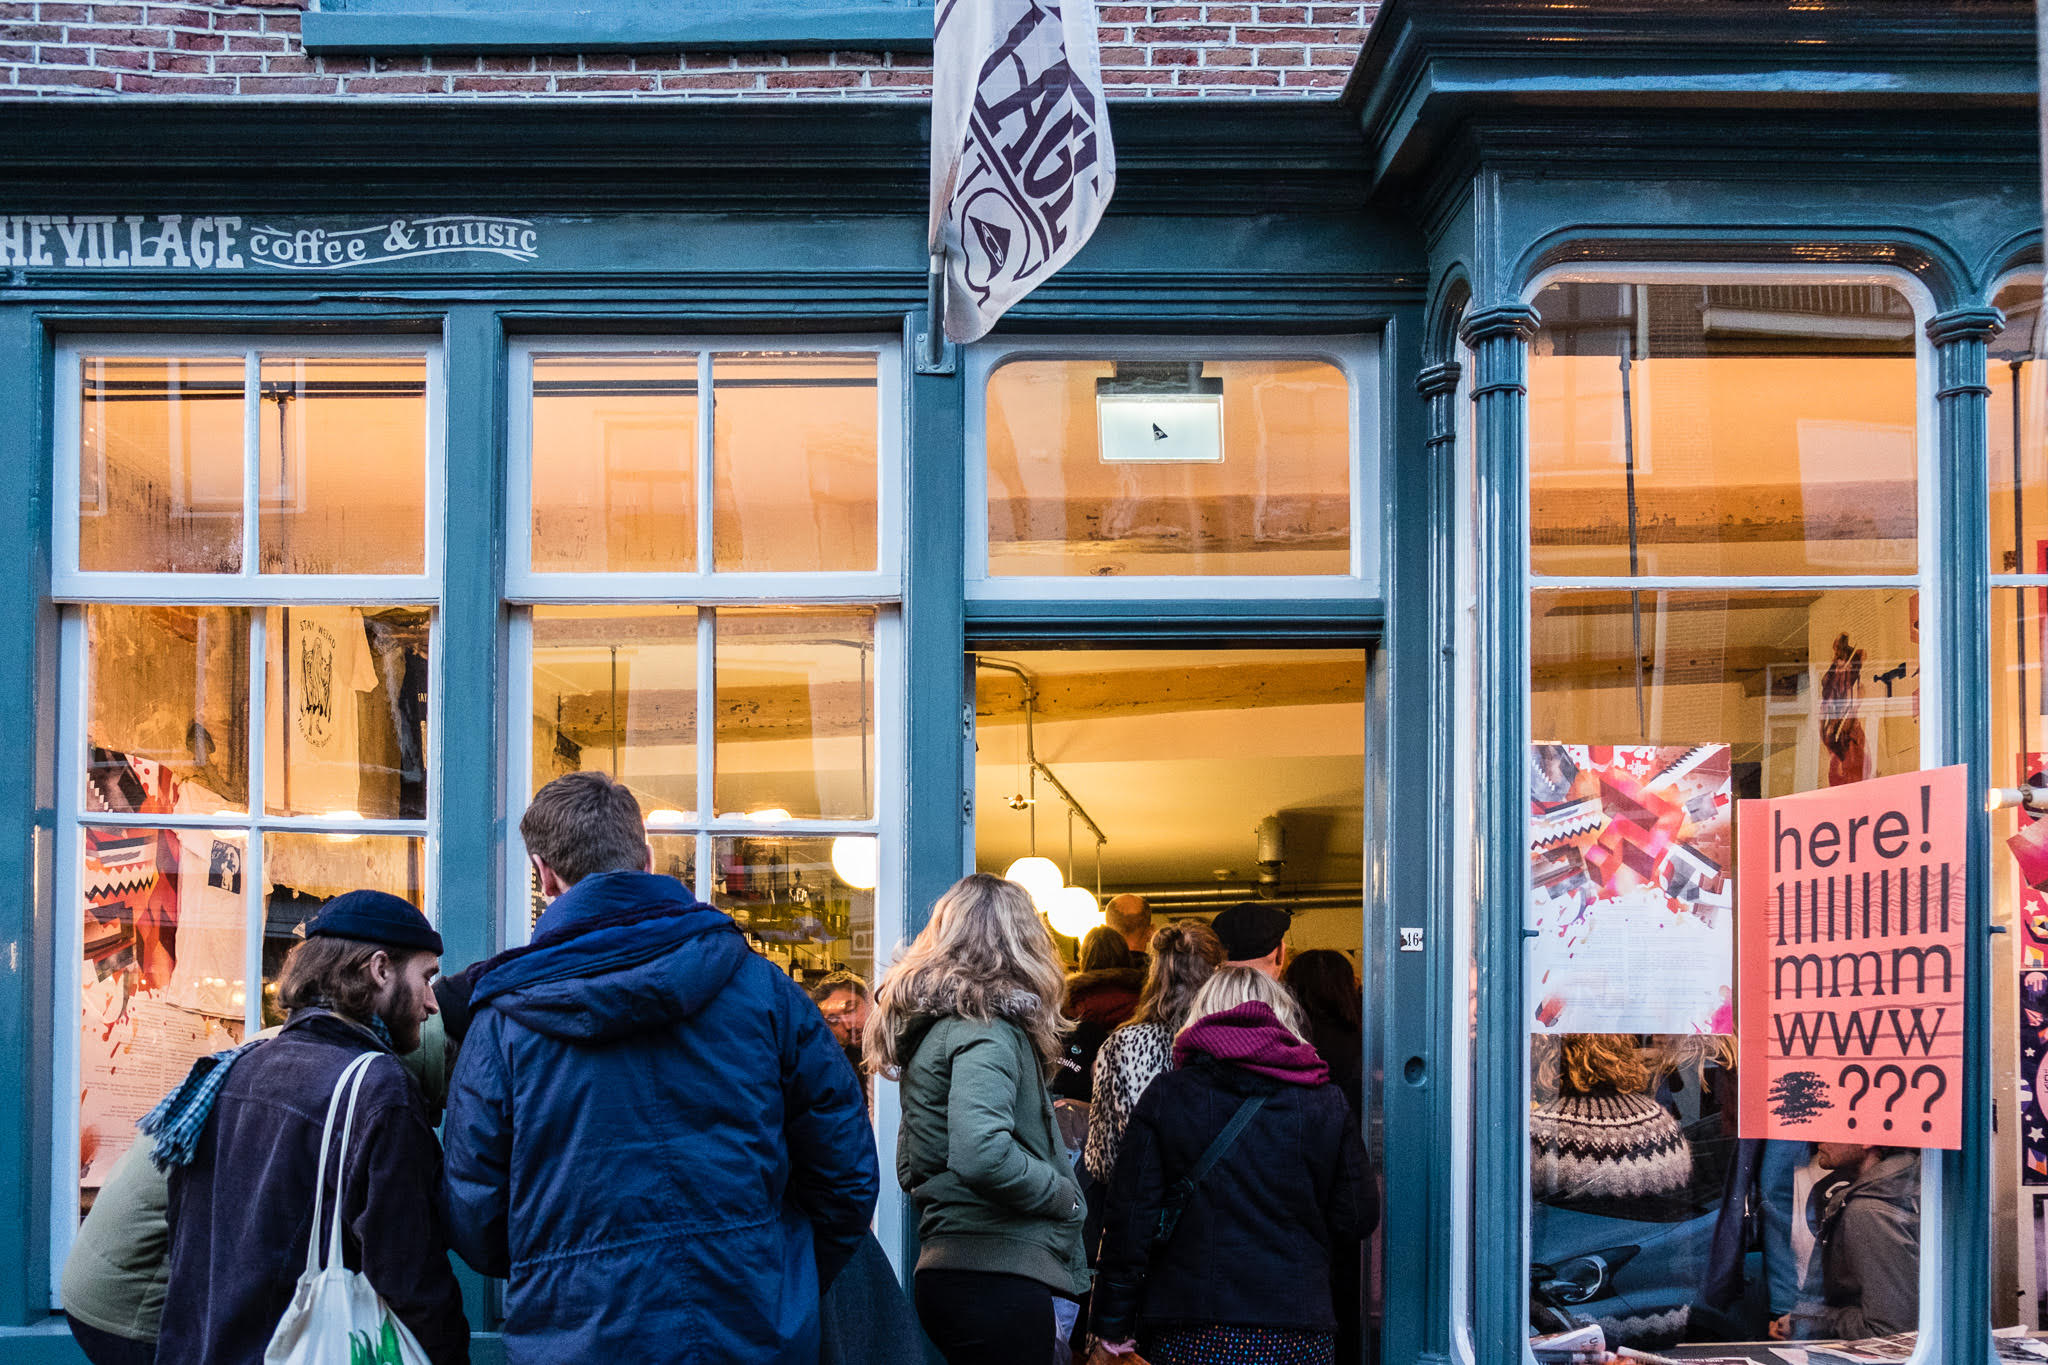 LGW Treasure Guide: discover our selection of Utrecht's most exciting spots & shops